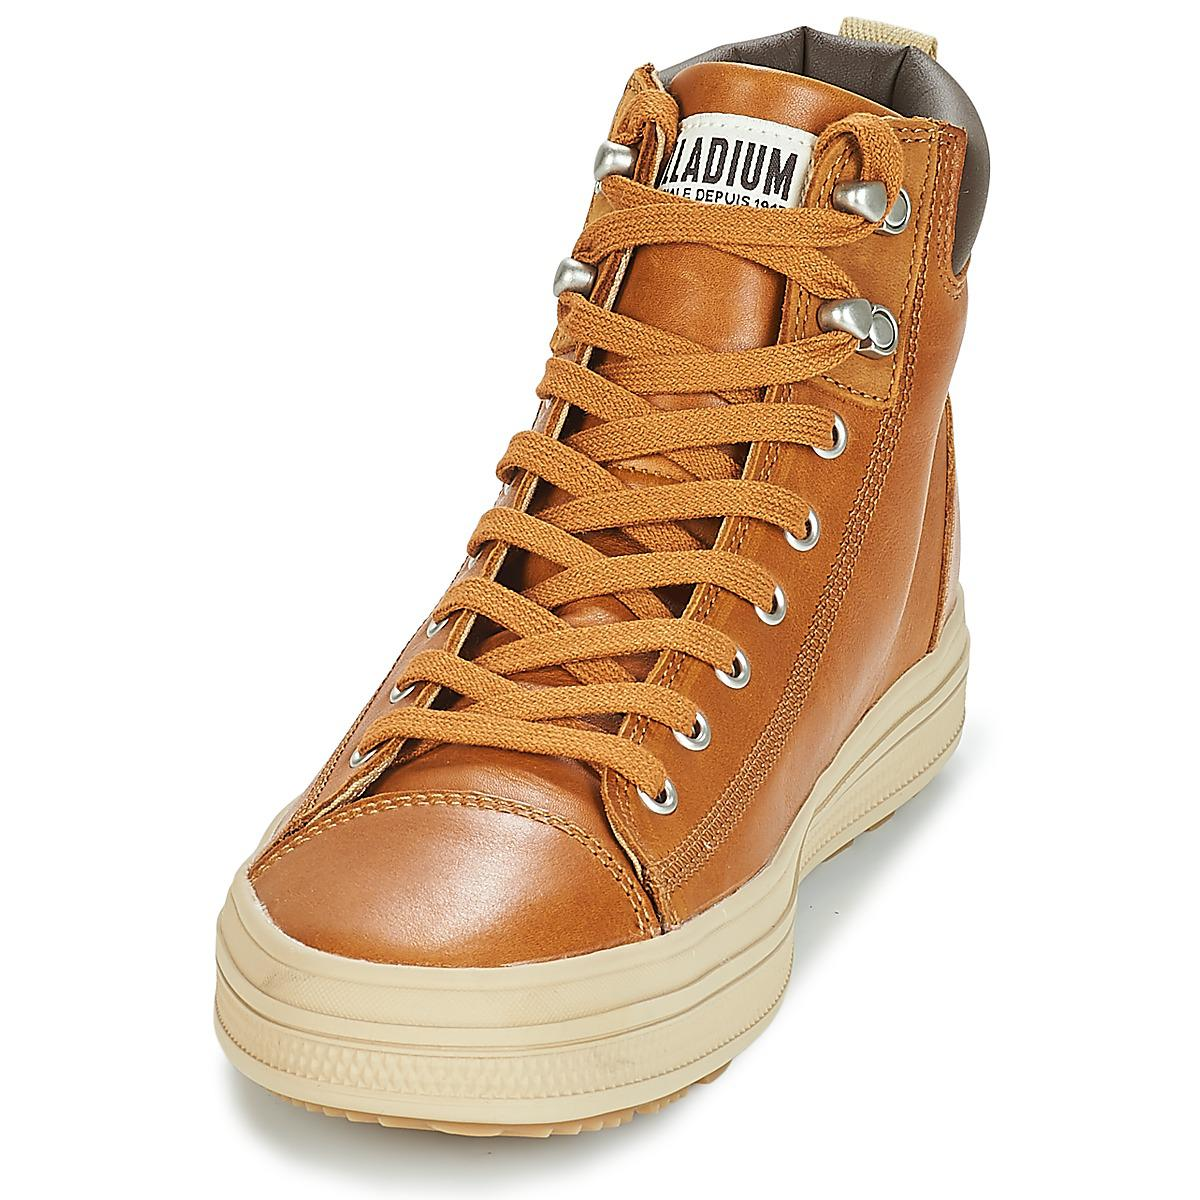 6b856f2cb4b Palladium Sub Mid Cuff Men s Shoes (high-top Trainers) In Brown in ...